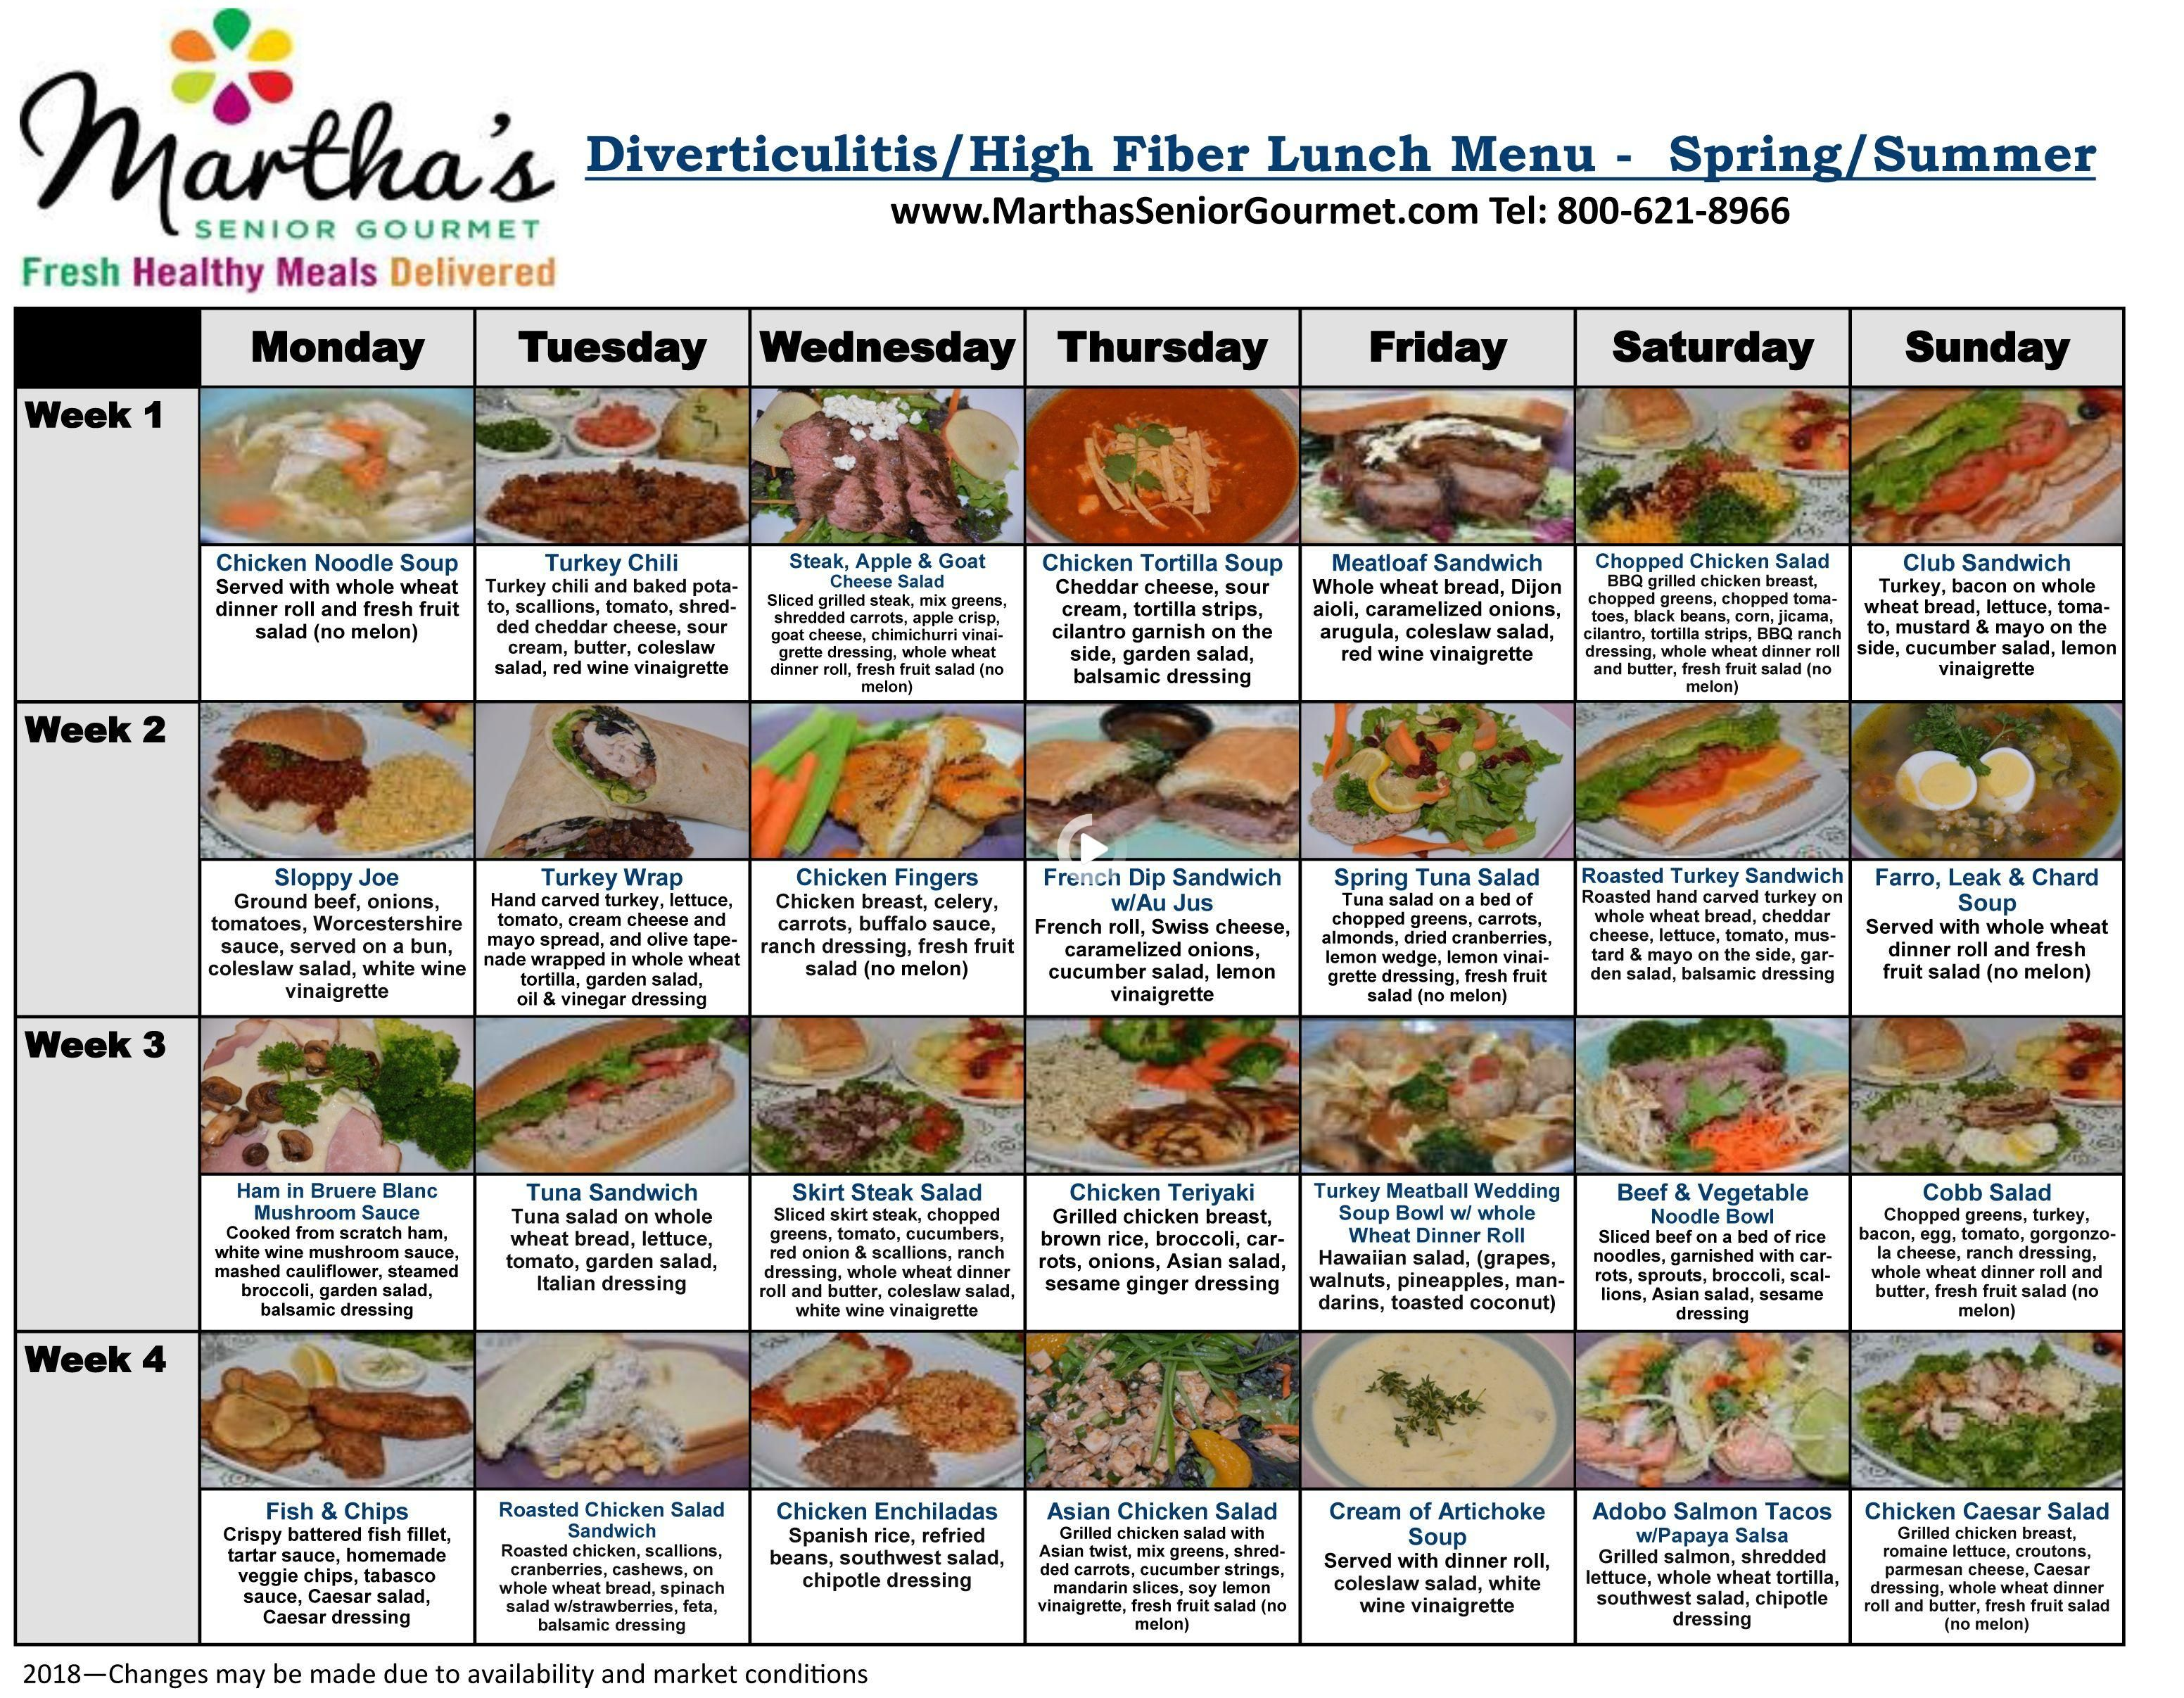 Diverticulitis Menus In 2021 Healthy Meals Delivered High Fibre Lunches Healthy Recipes